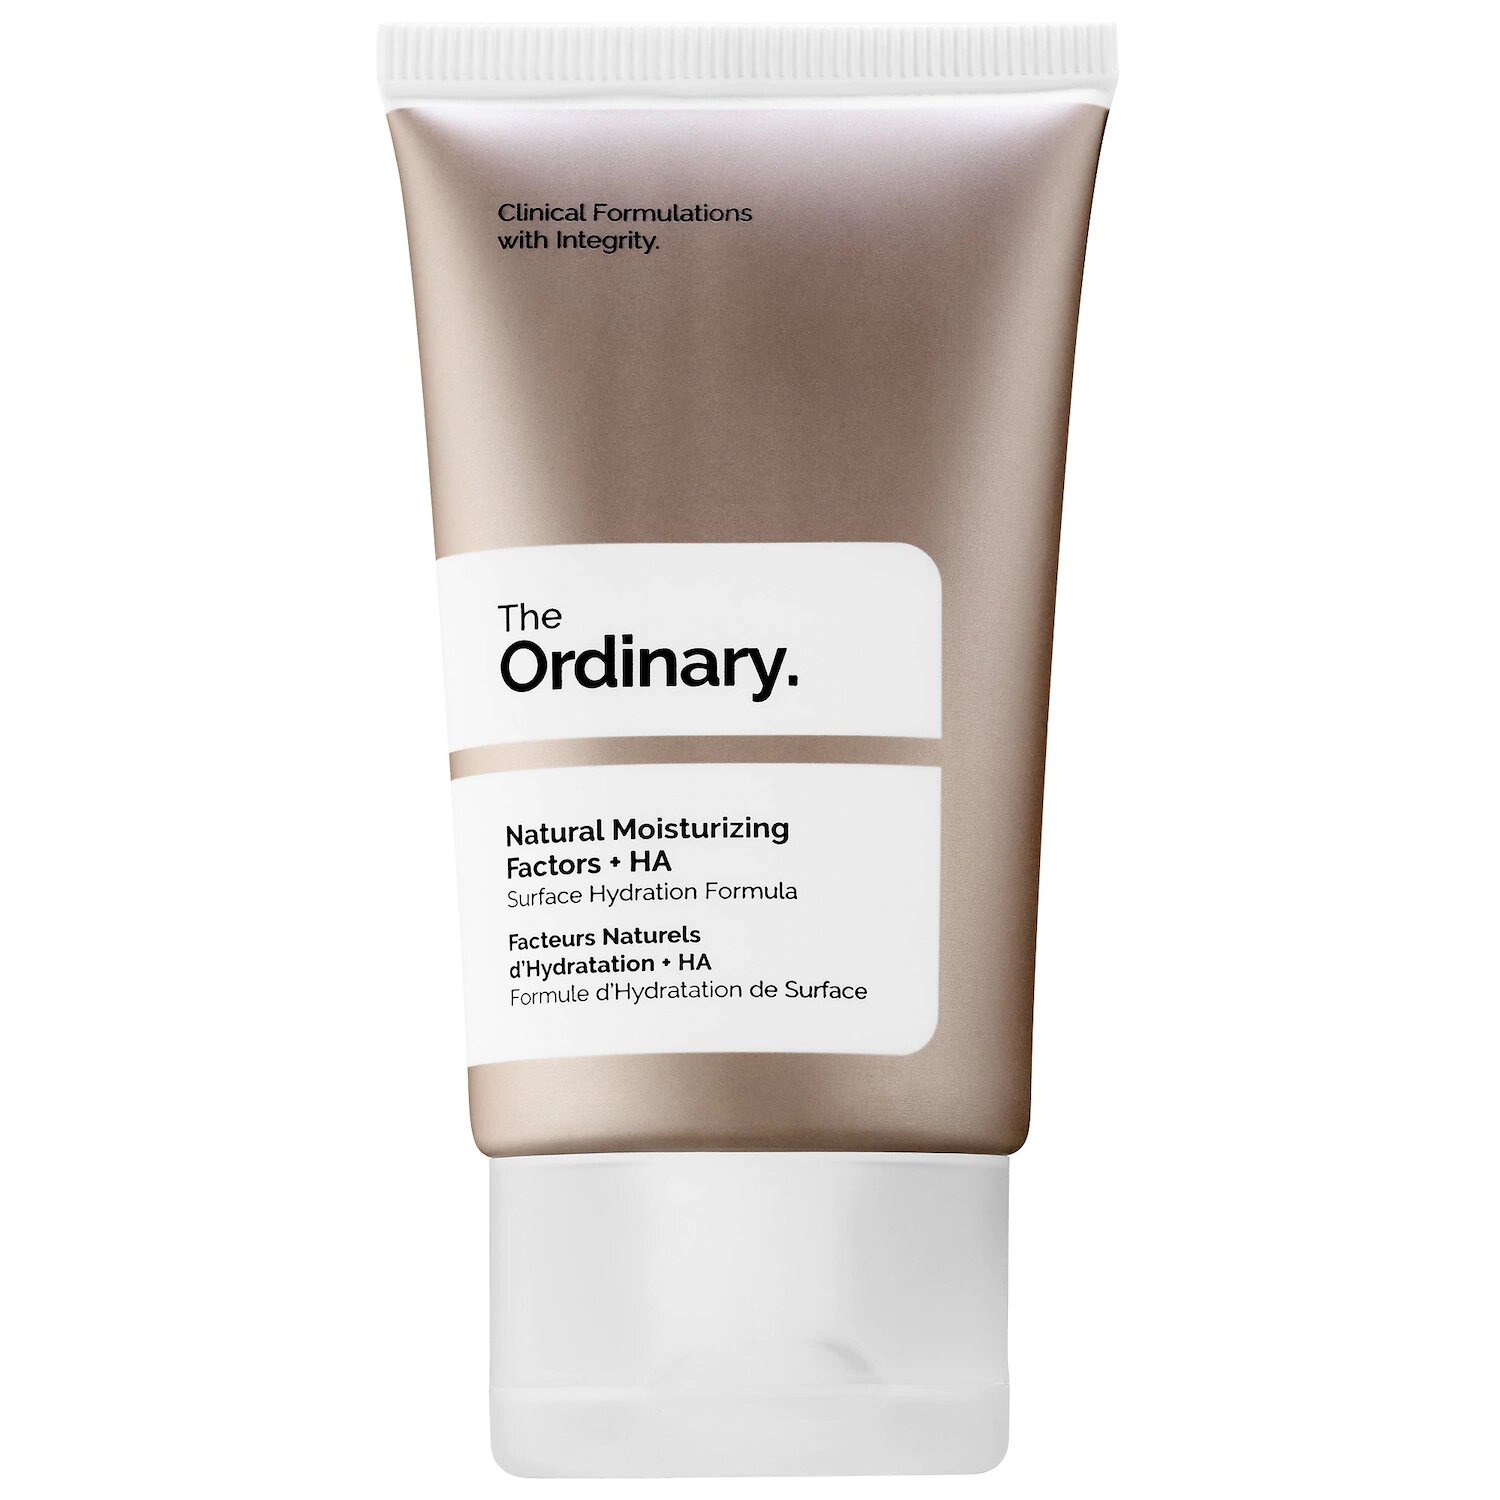 Natural Moisturizing Factors HA The Ordinary